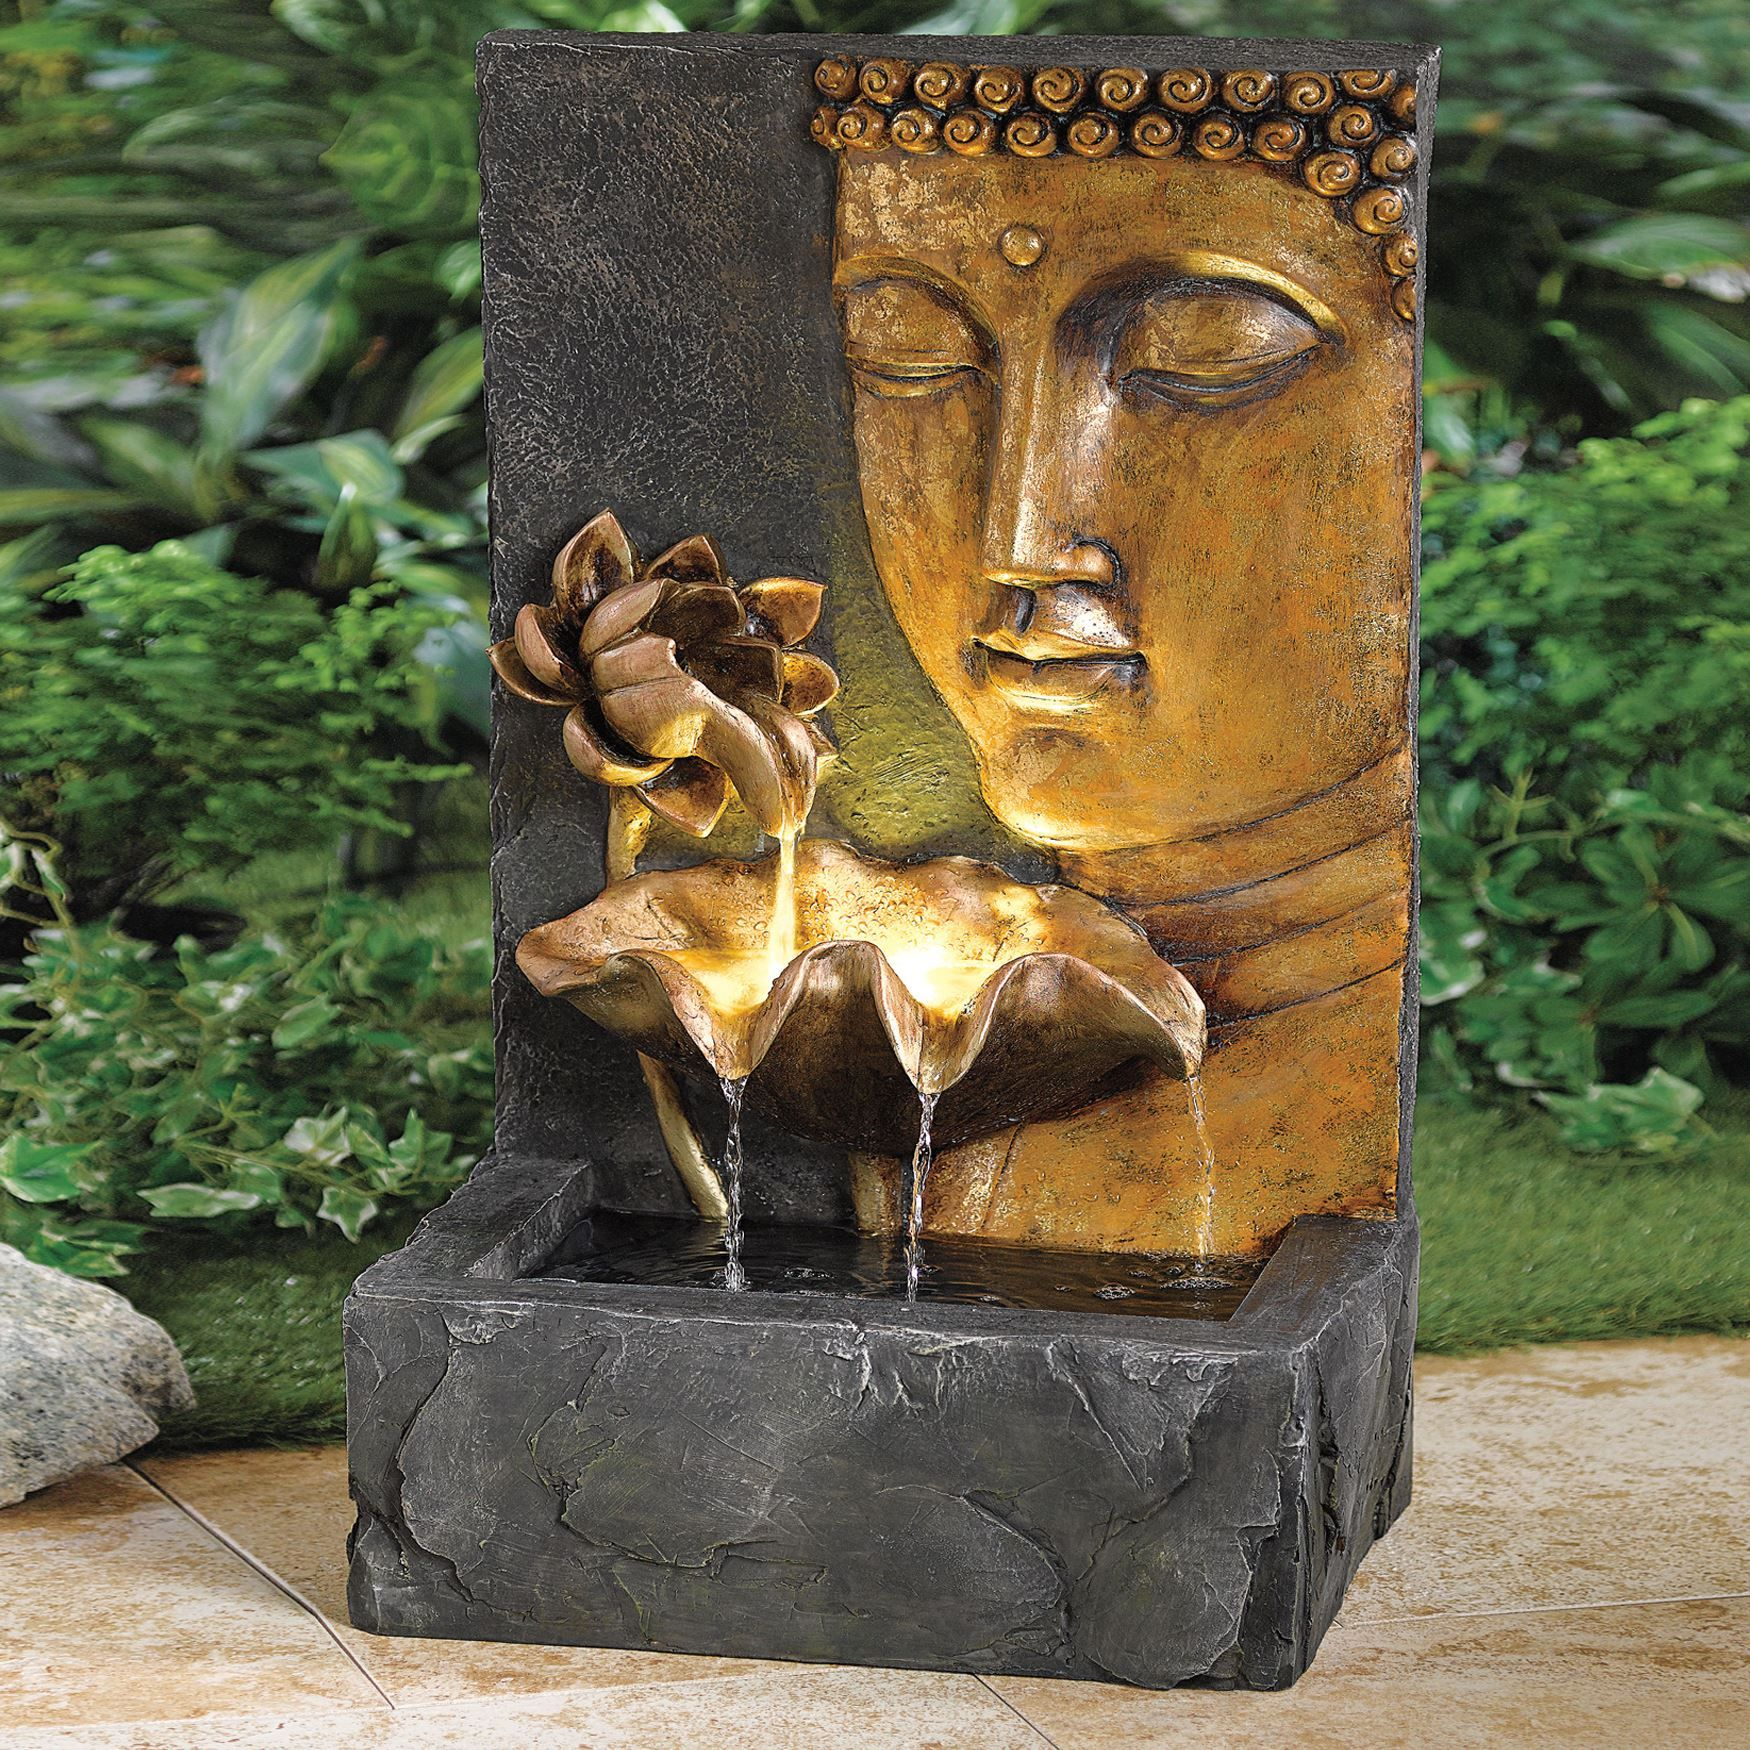 This Beautiful Buddha Water Fountain Brings A Tranquil Touch To